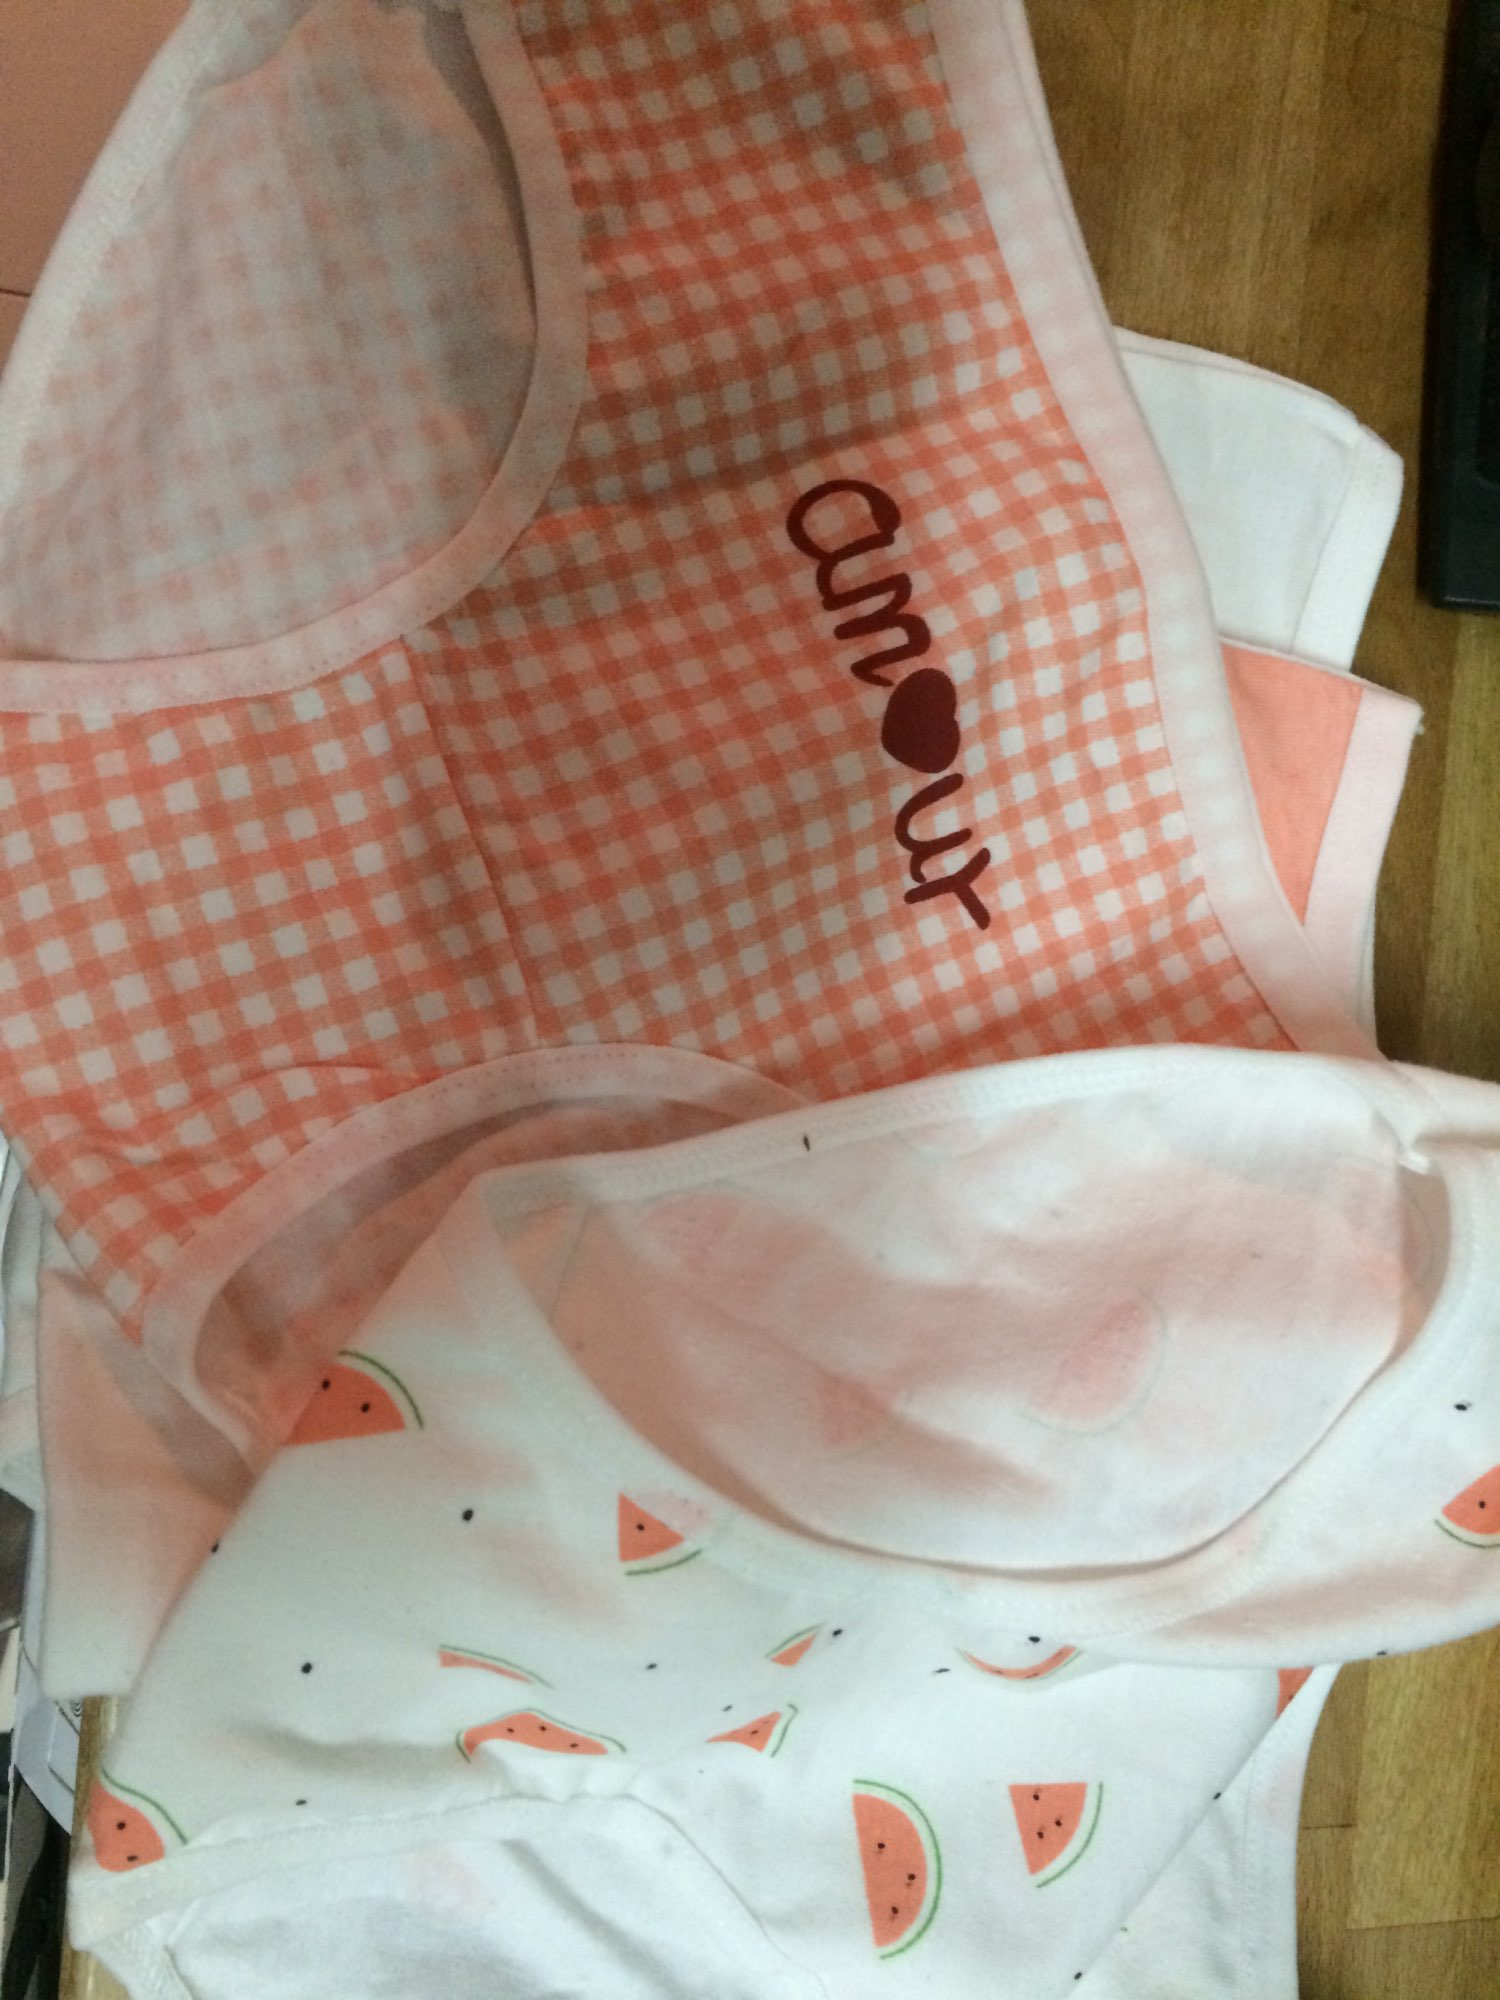 New Fashion 4Pcs/Lot Girl Panties Sweet Underwear Cotton Briefs Lovely Lingerie Soft Comfortable Striped Panty 863 photo review